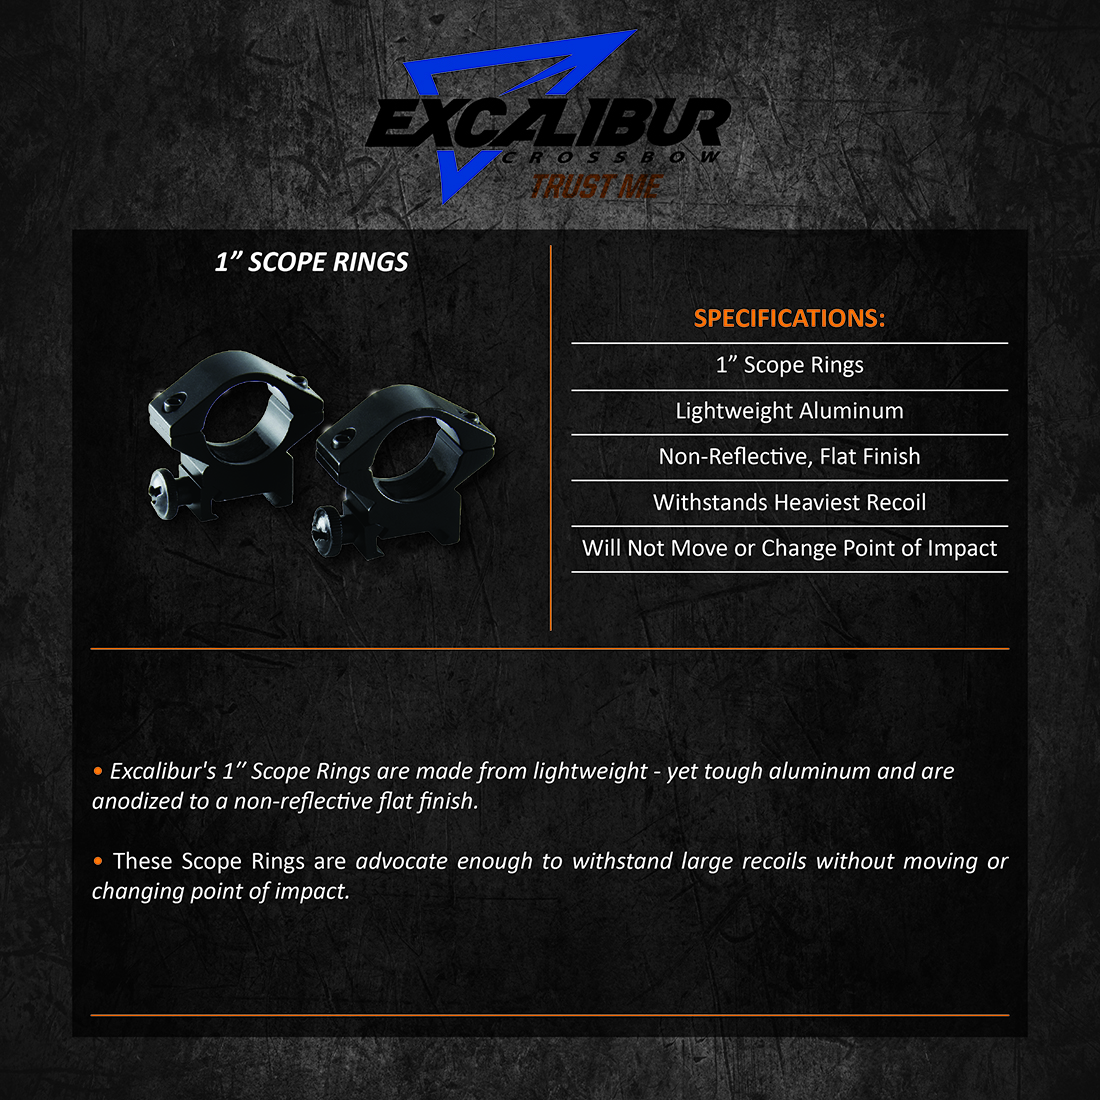 Excalibur_1inch_Scope_Rings_Product_Description